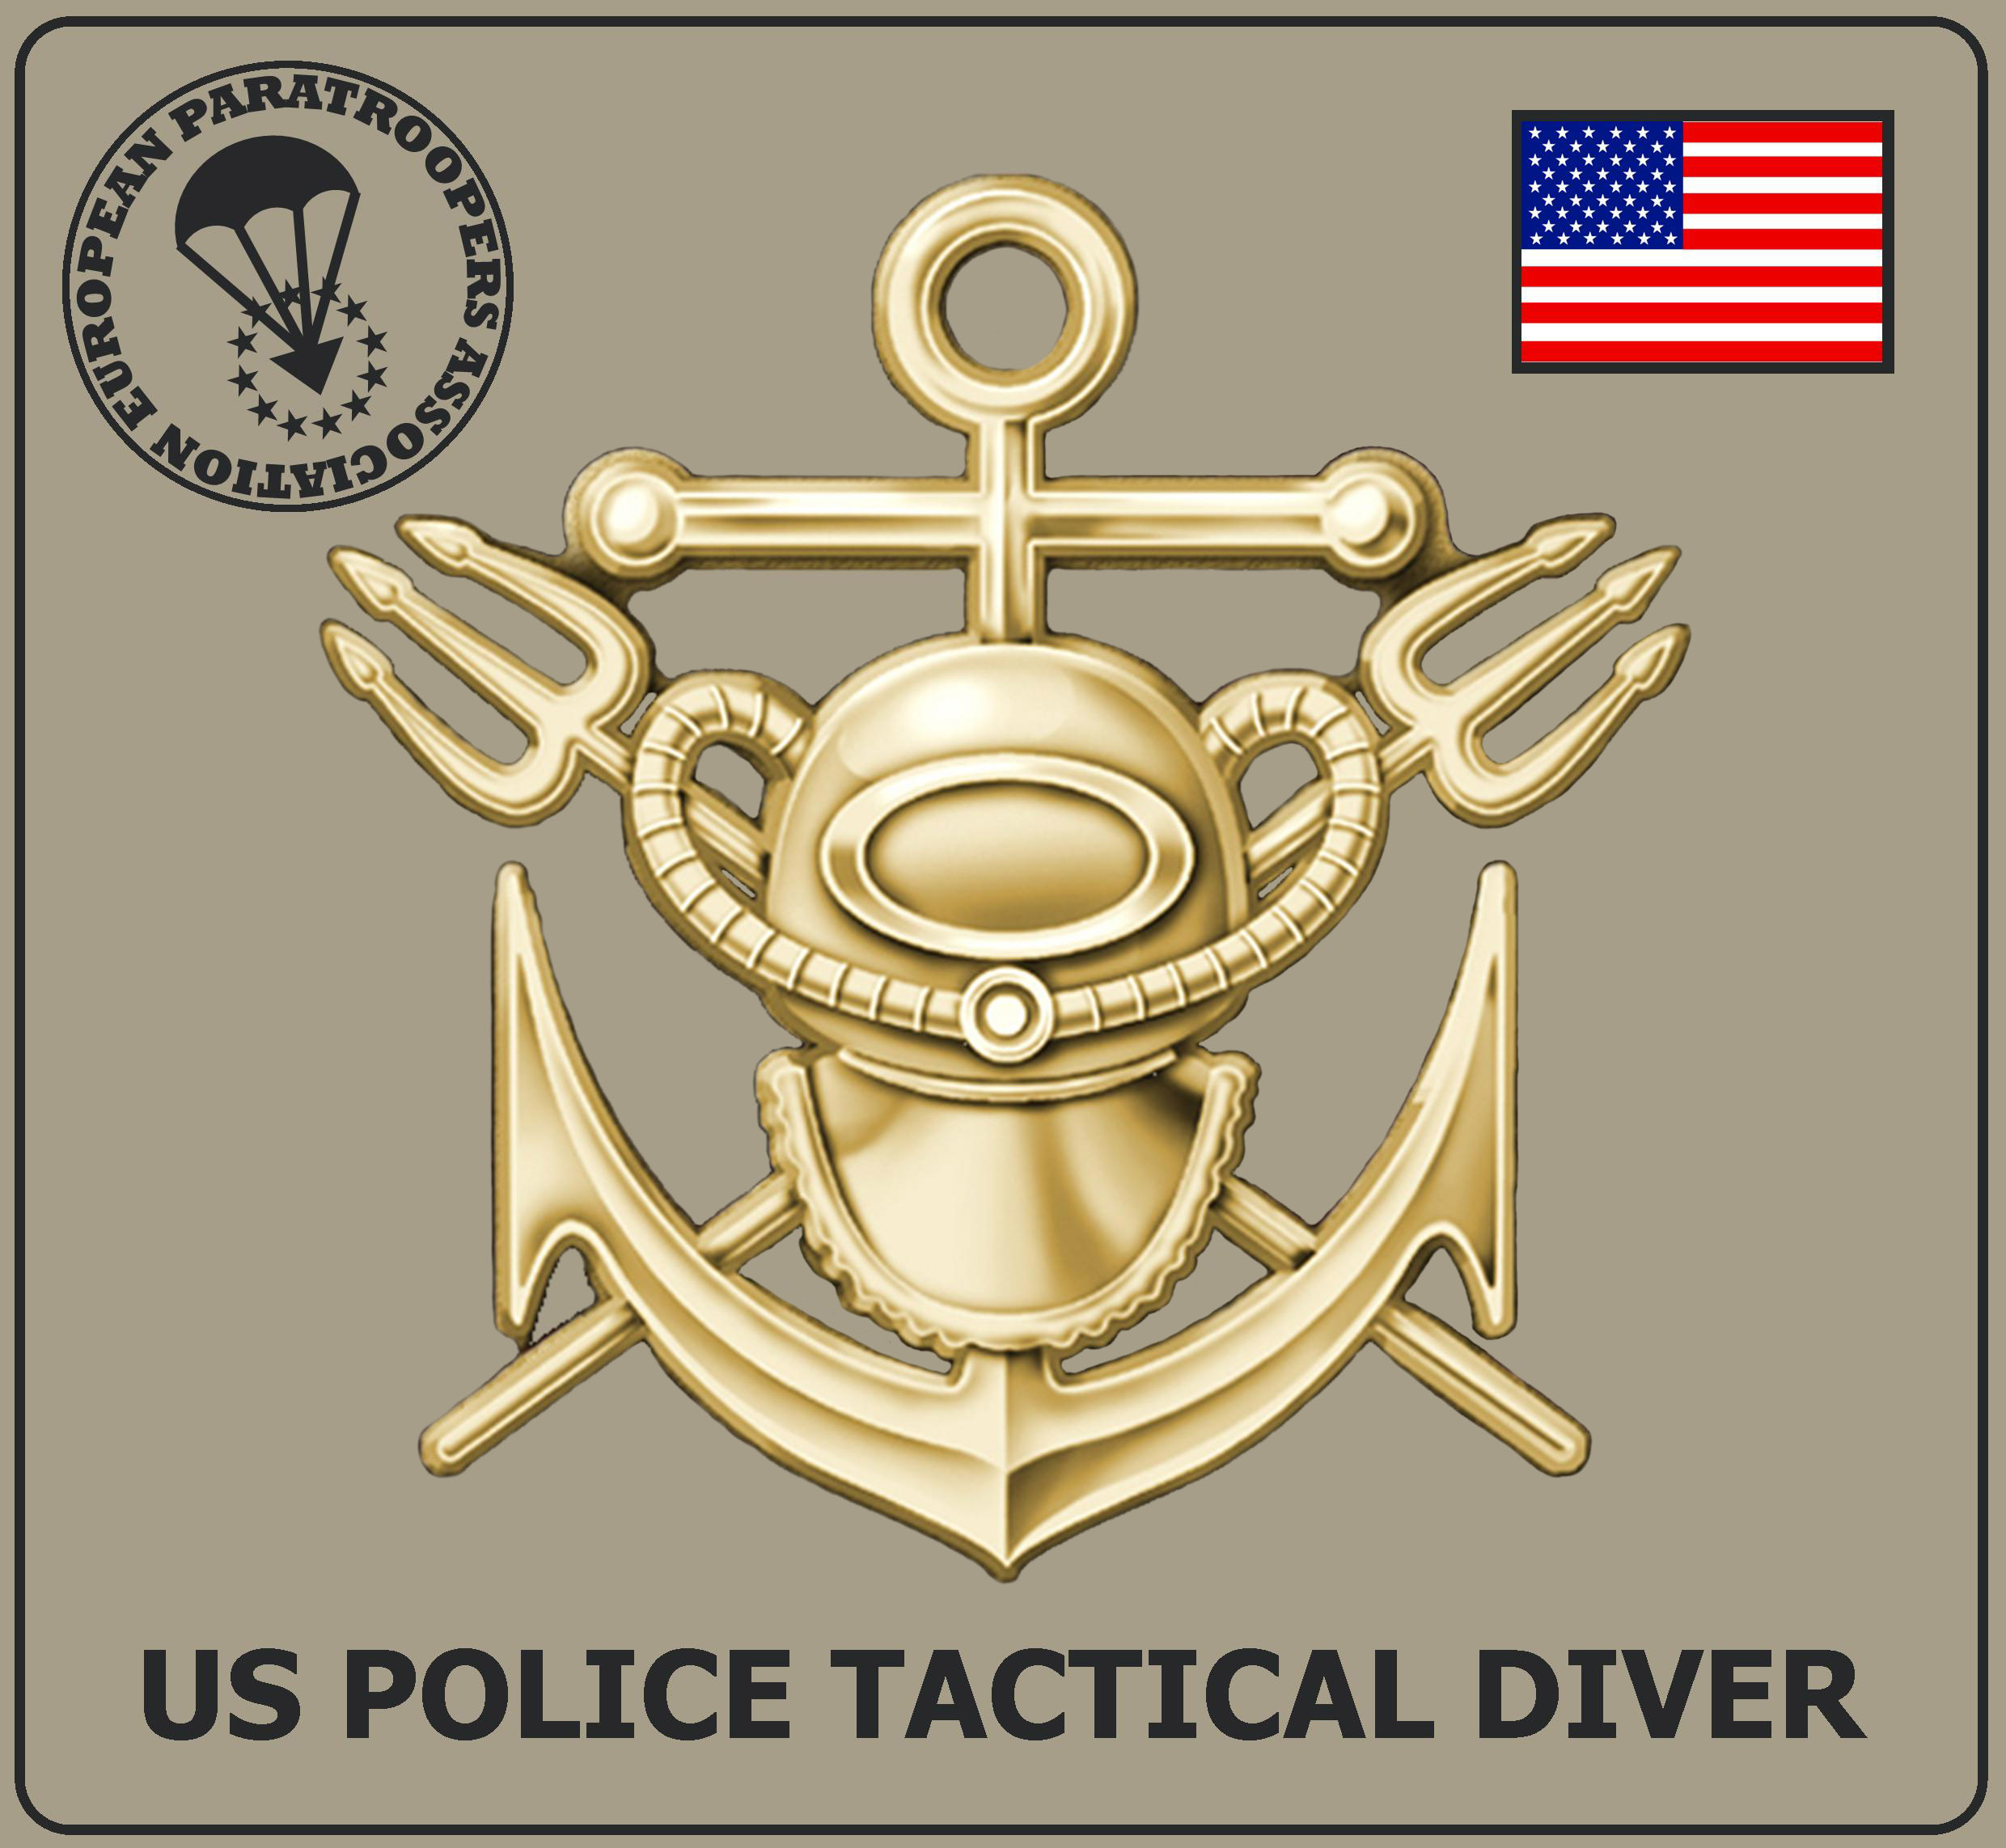 US POLICE TACTICAL DIVER BADGE